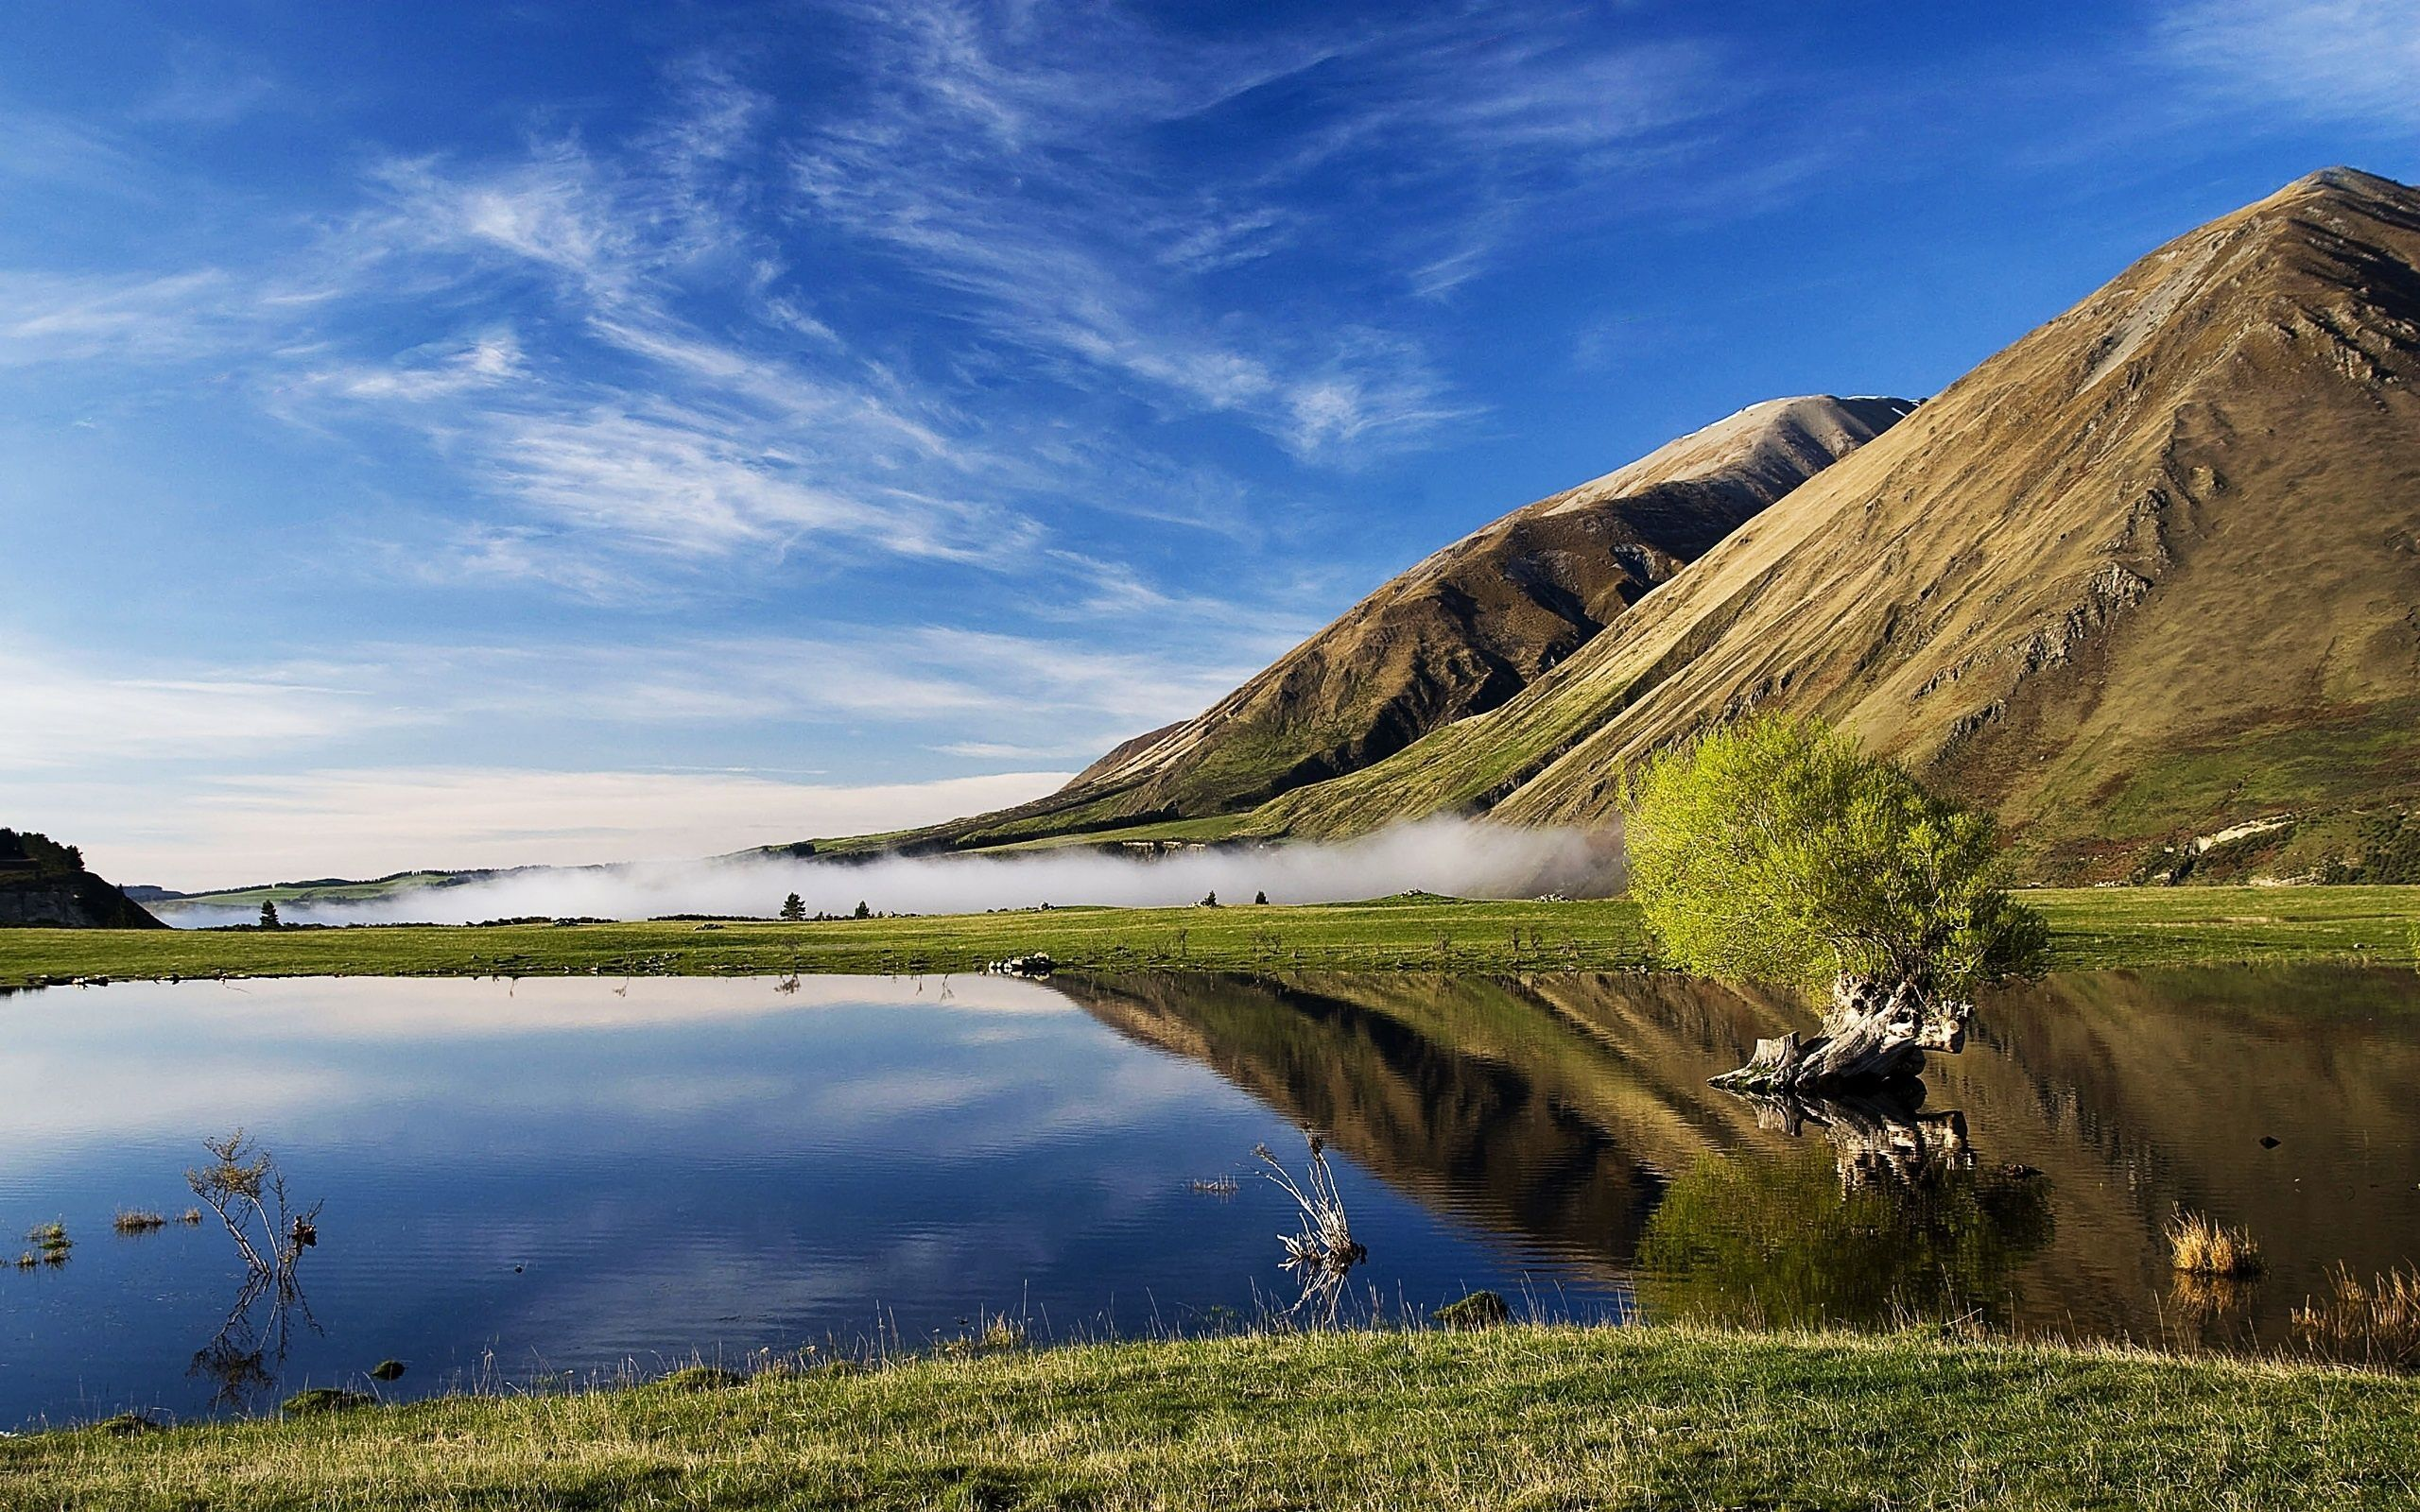 Fresh New Zealand Desktop Wallpaper Free Di 2020 Pemandangan Gambar Queenstown